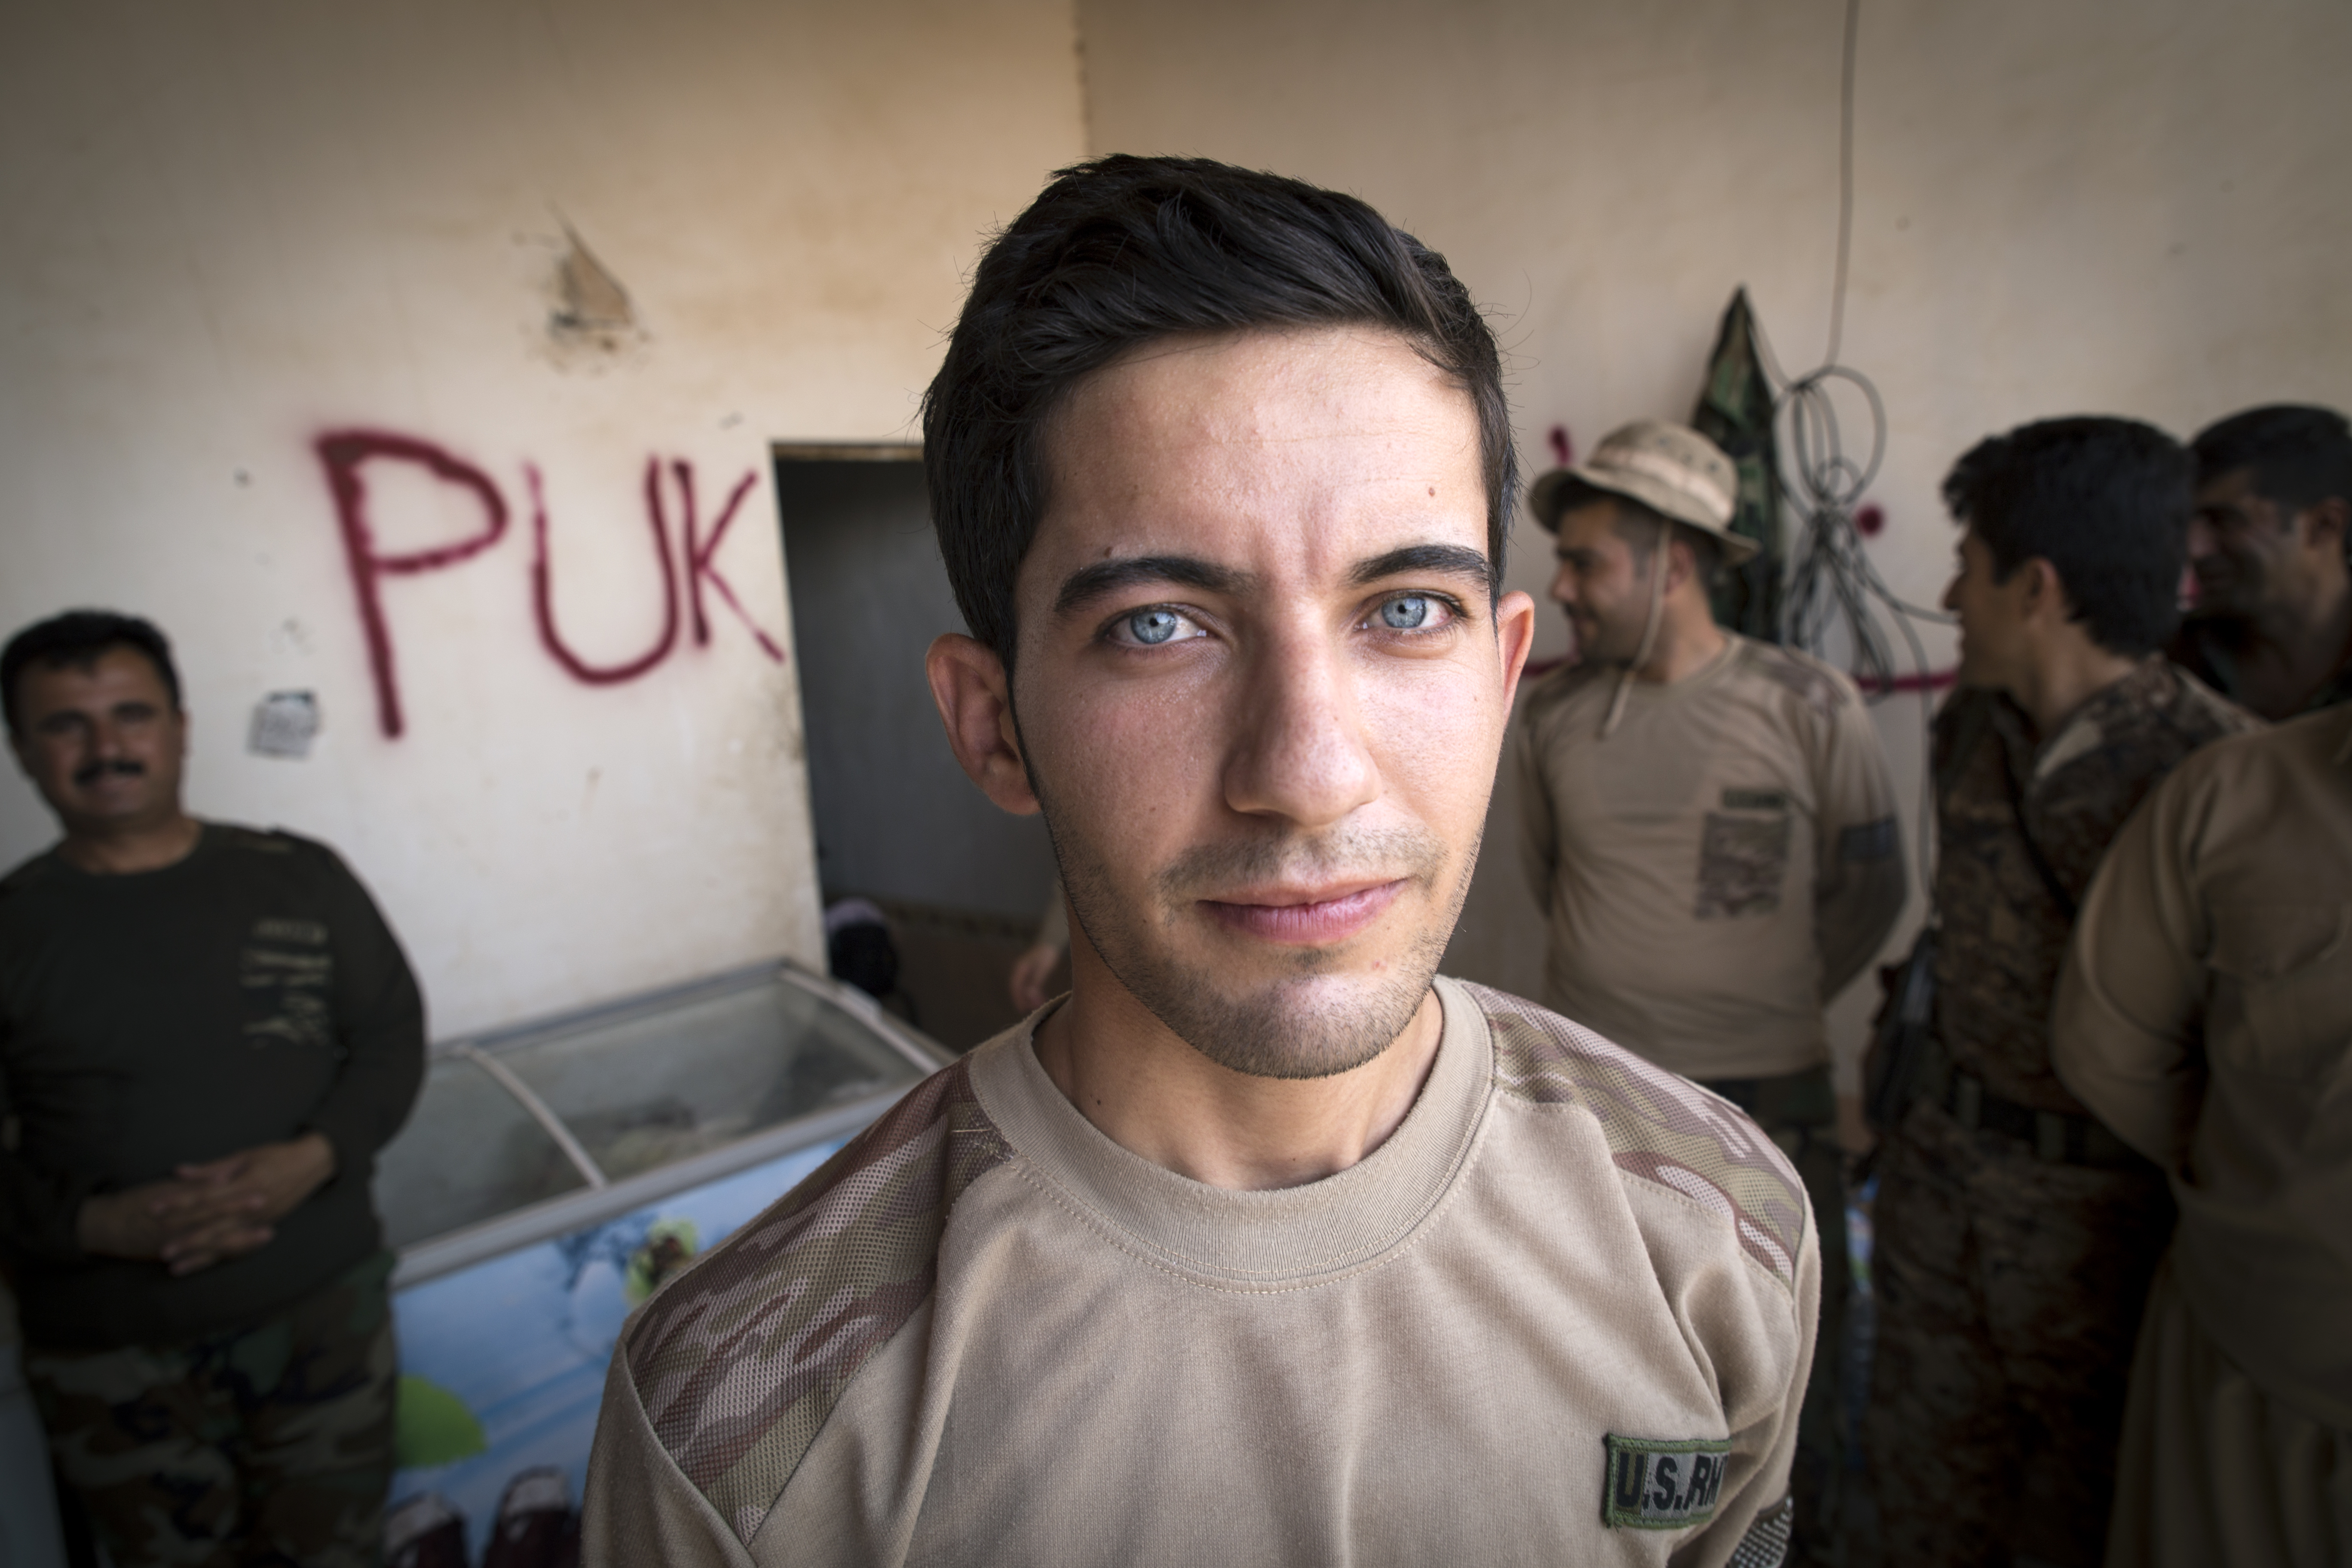 Peshmerga fighter Chewan, 22, bought his 'US Army' outfit in the local bazar in Koya. Most fighters have to pay for their own outfits.